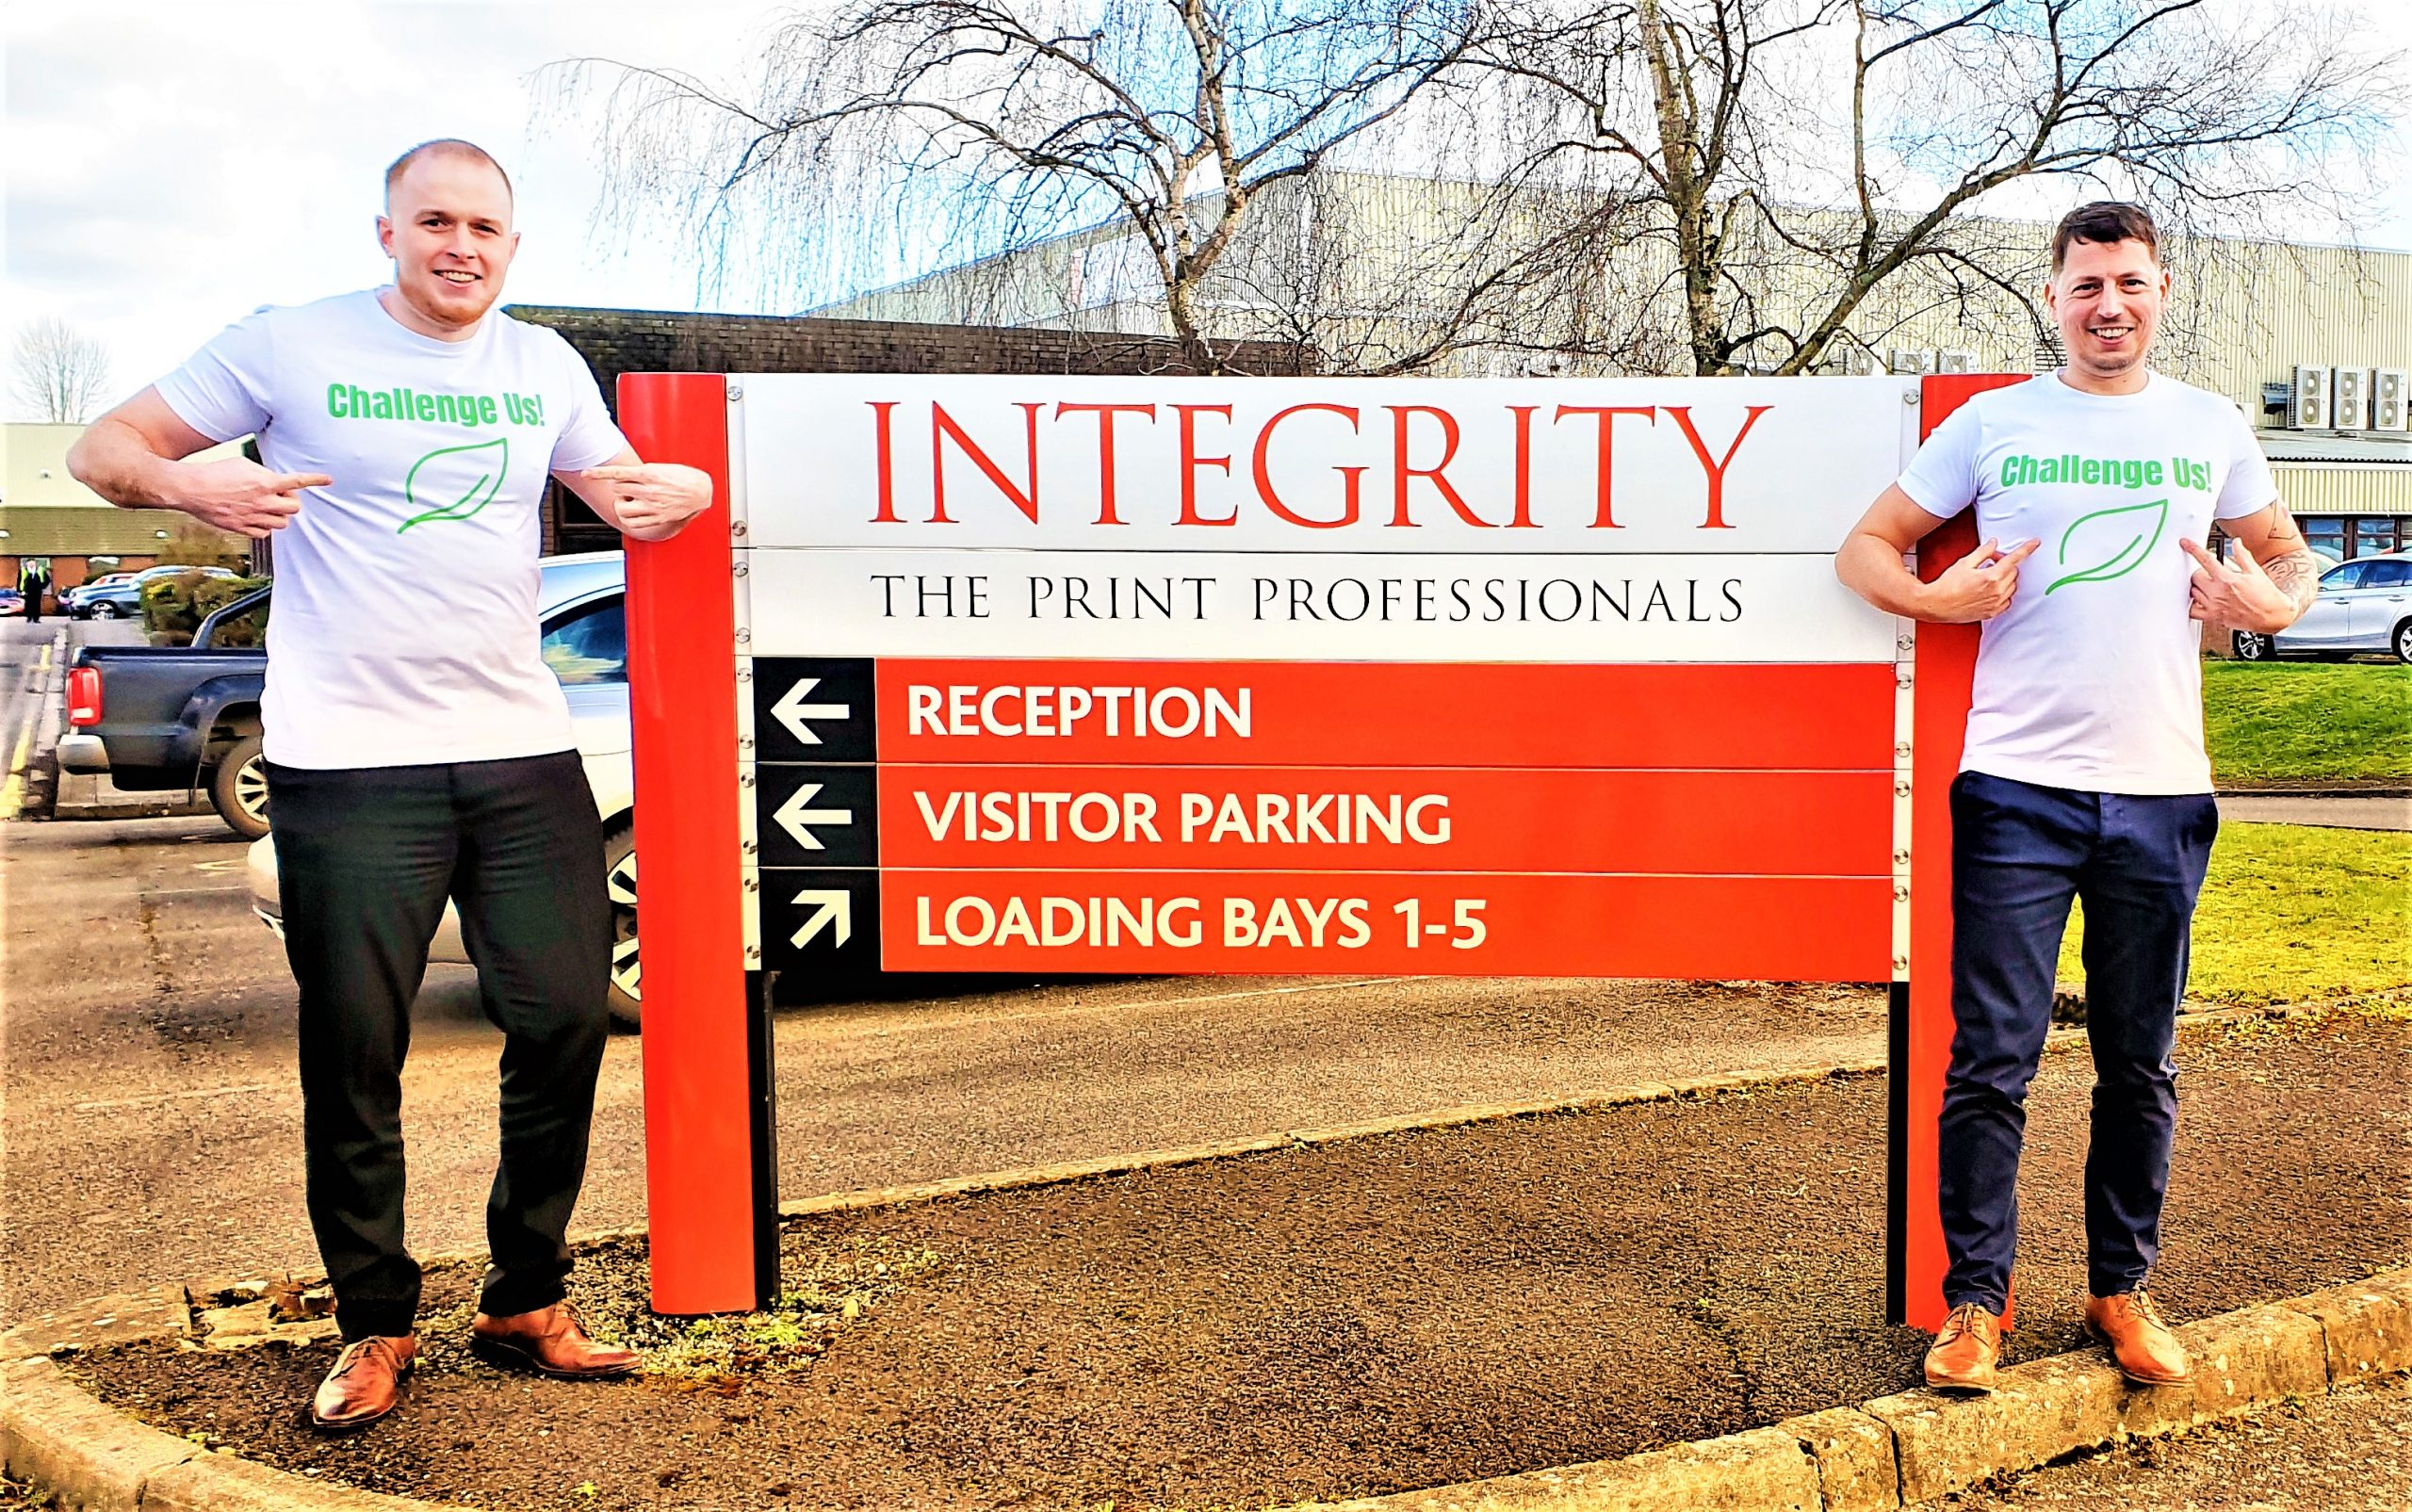 Integrity Launch the 'Challenge Us' Initiative